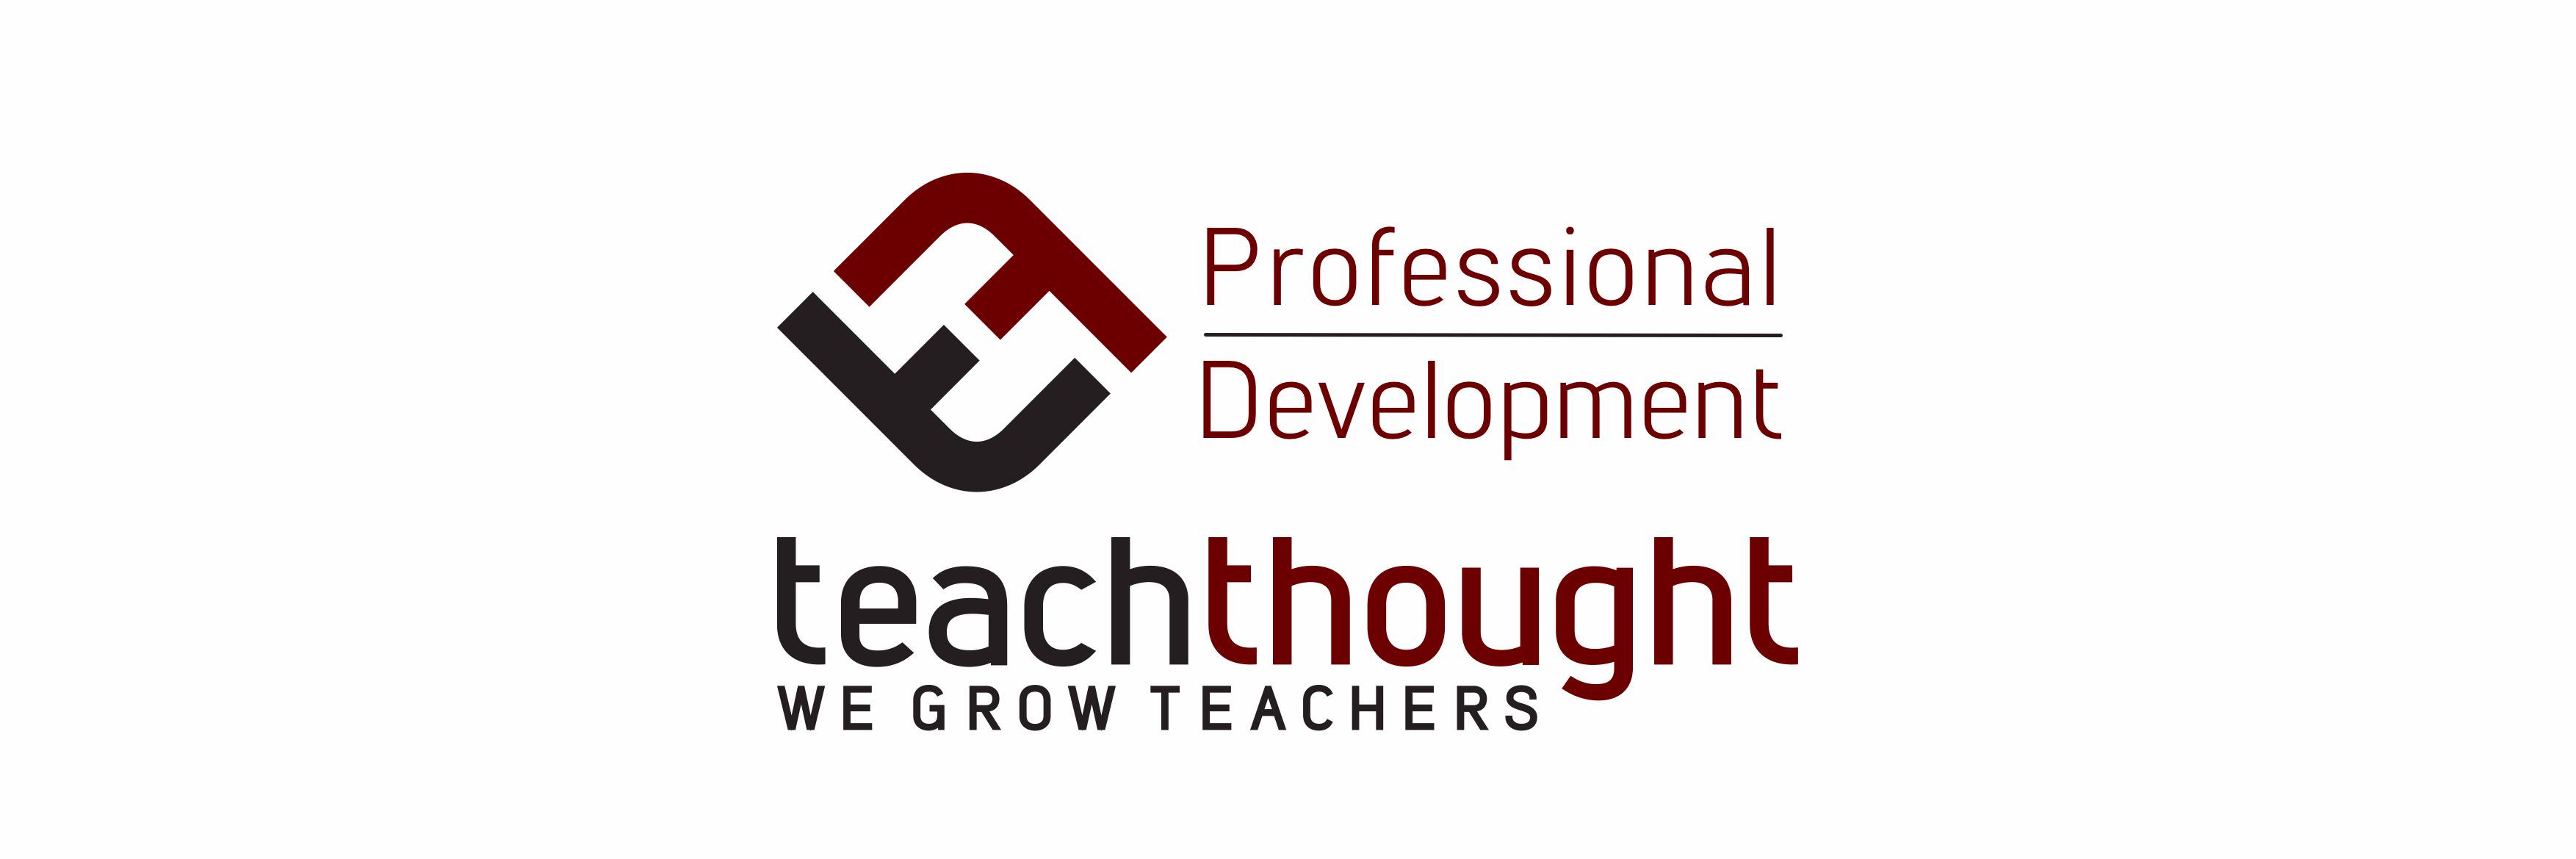 Looking to grow your school with deeper learning? Book your spring and summer Project-Based Learning workshop befor… https://t.co/Mh2mBD9M7y